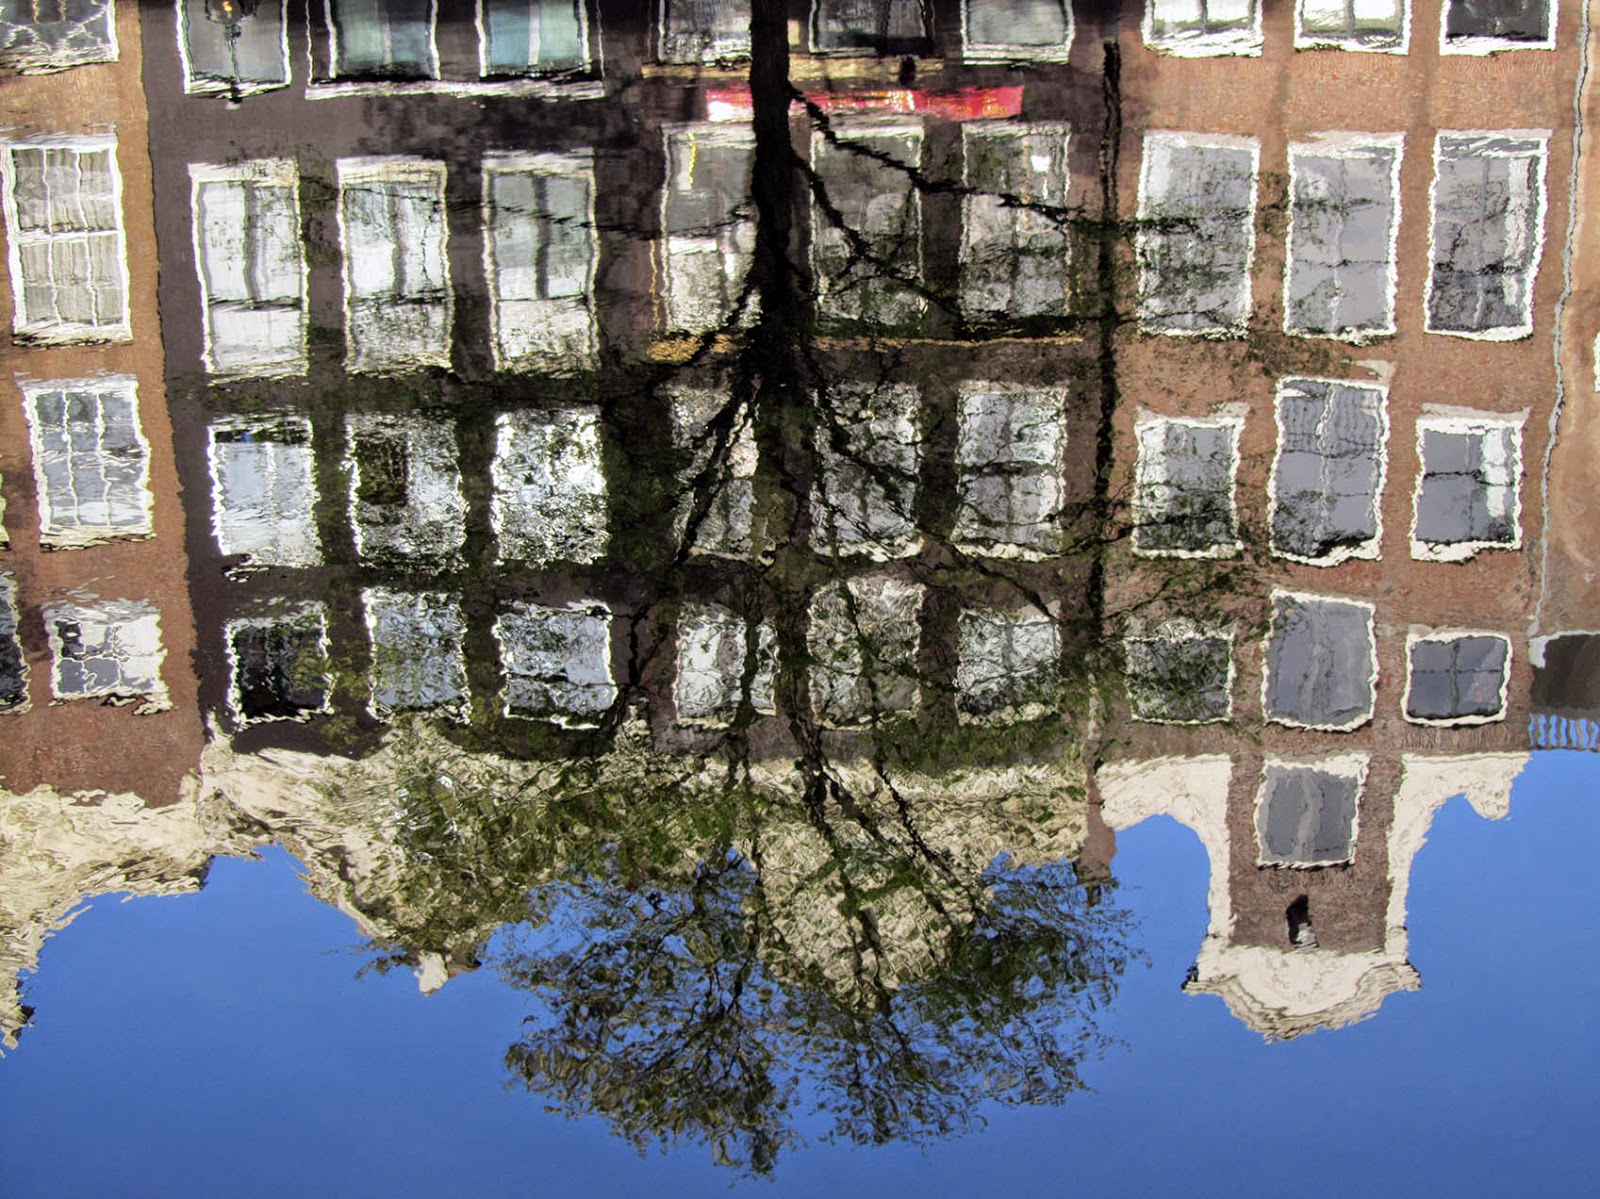 Reflection of Amsterdam canal with tree